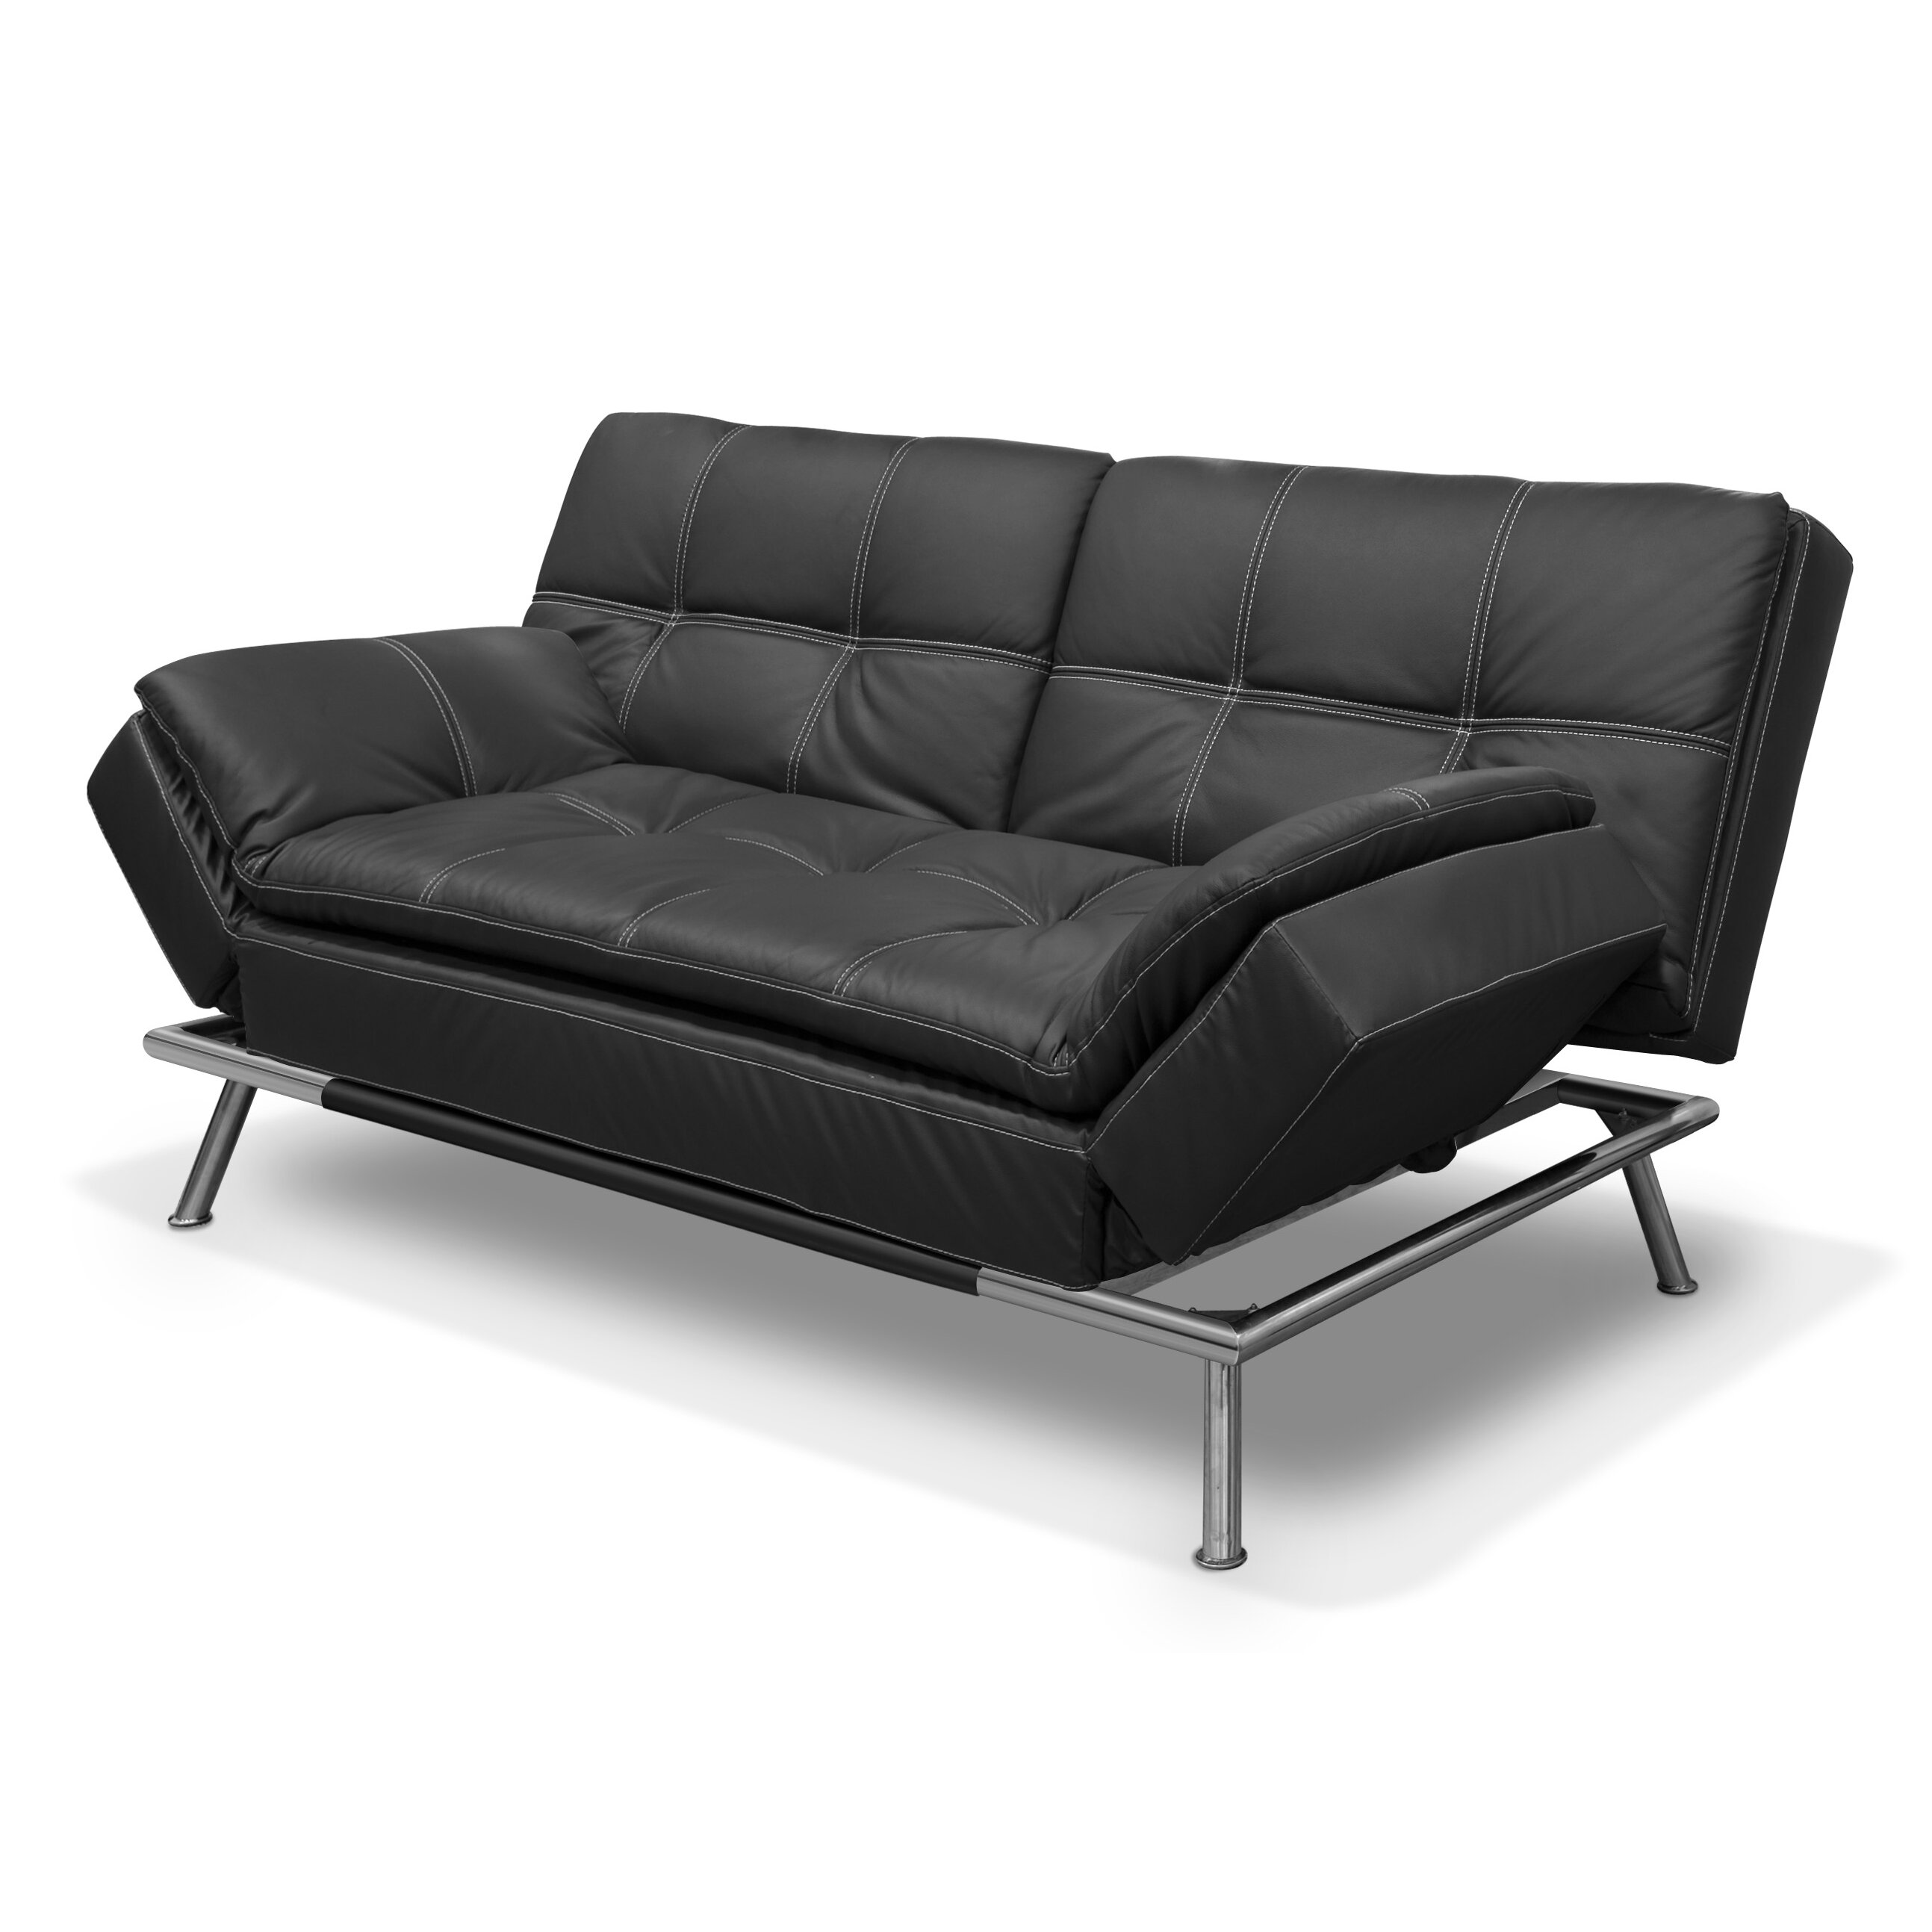 Wade Logan Wyatts Lounger Sleeper Sofa Wayfair